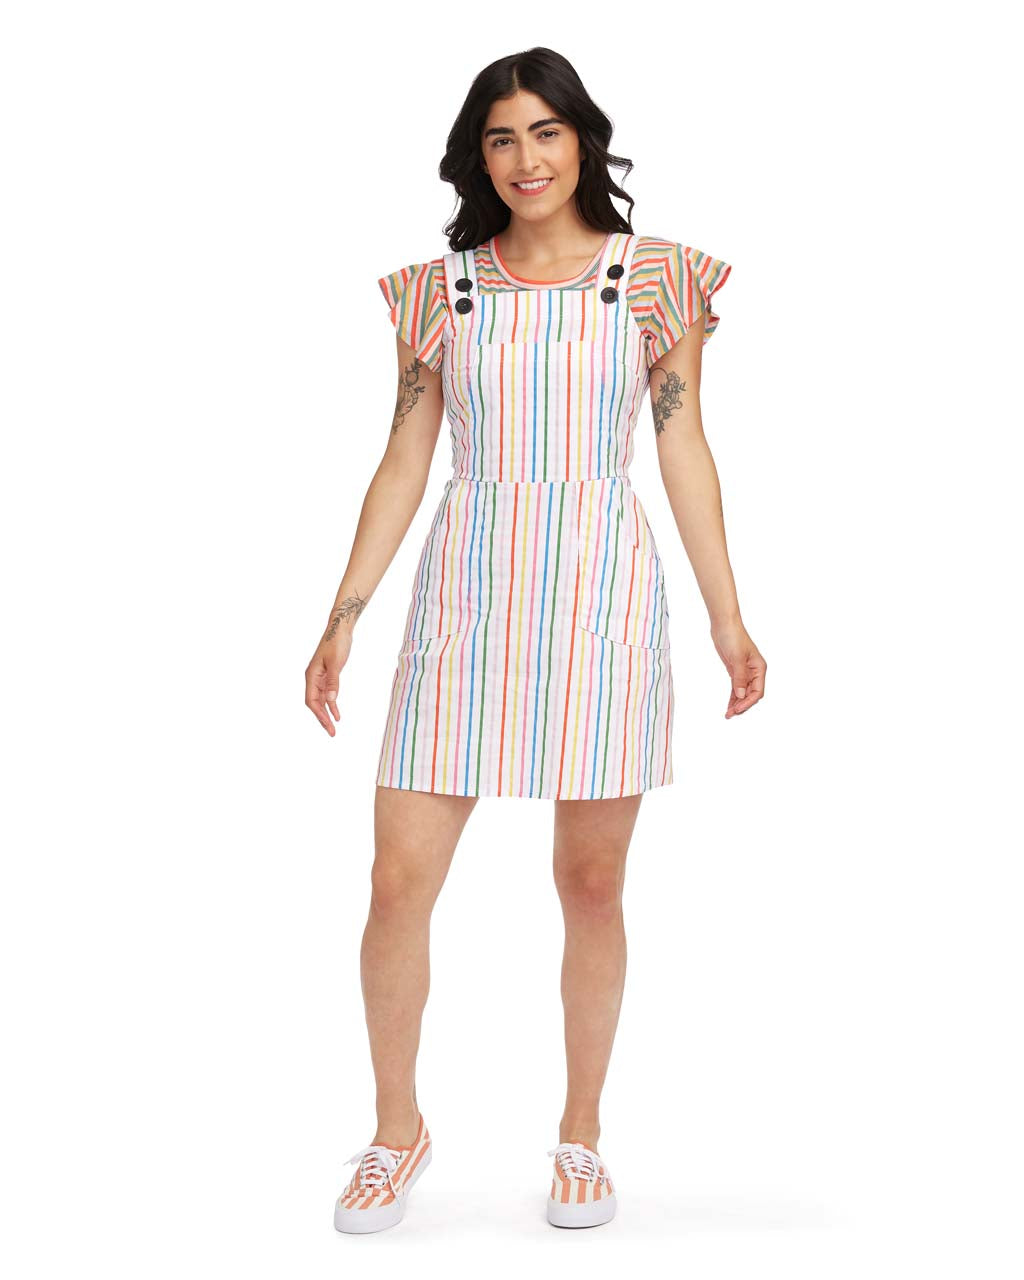 woman wearing the rainbow stripe overall dress with striped sneakers